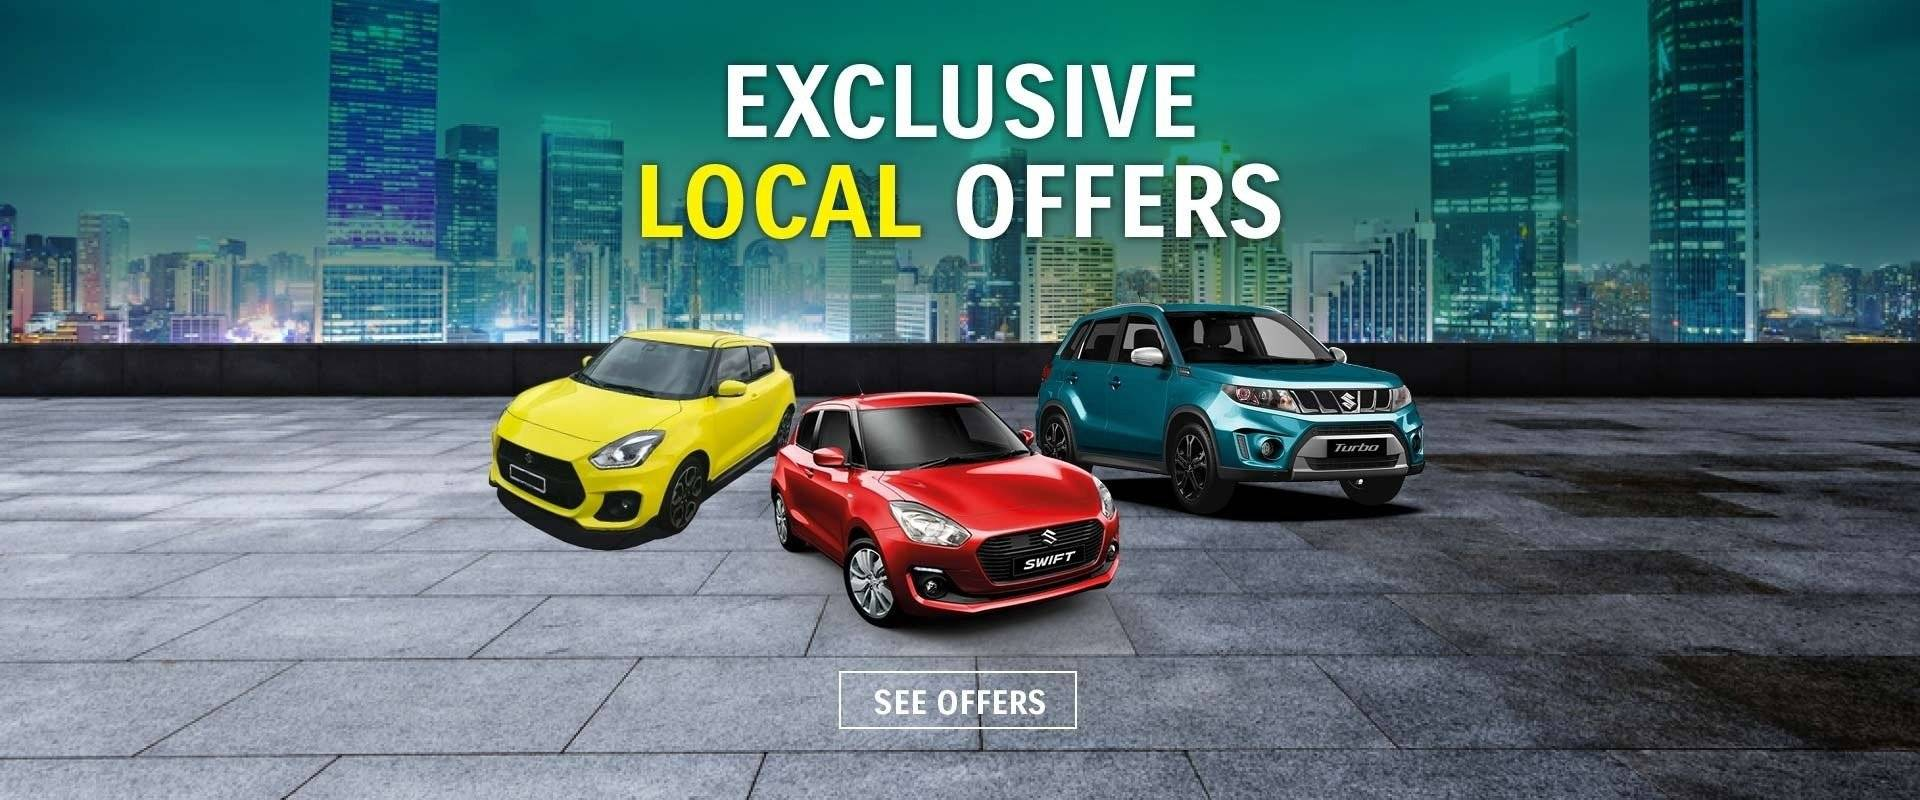 Eastern Suzuki Local Offers